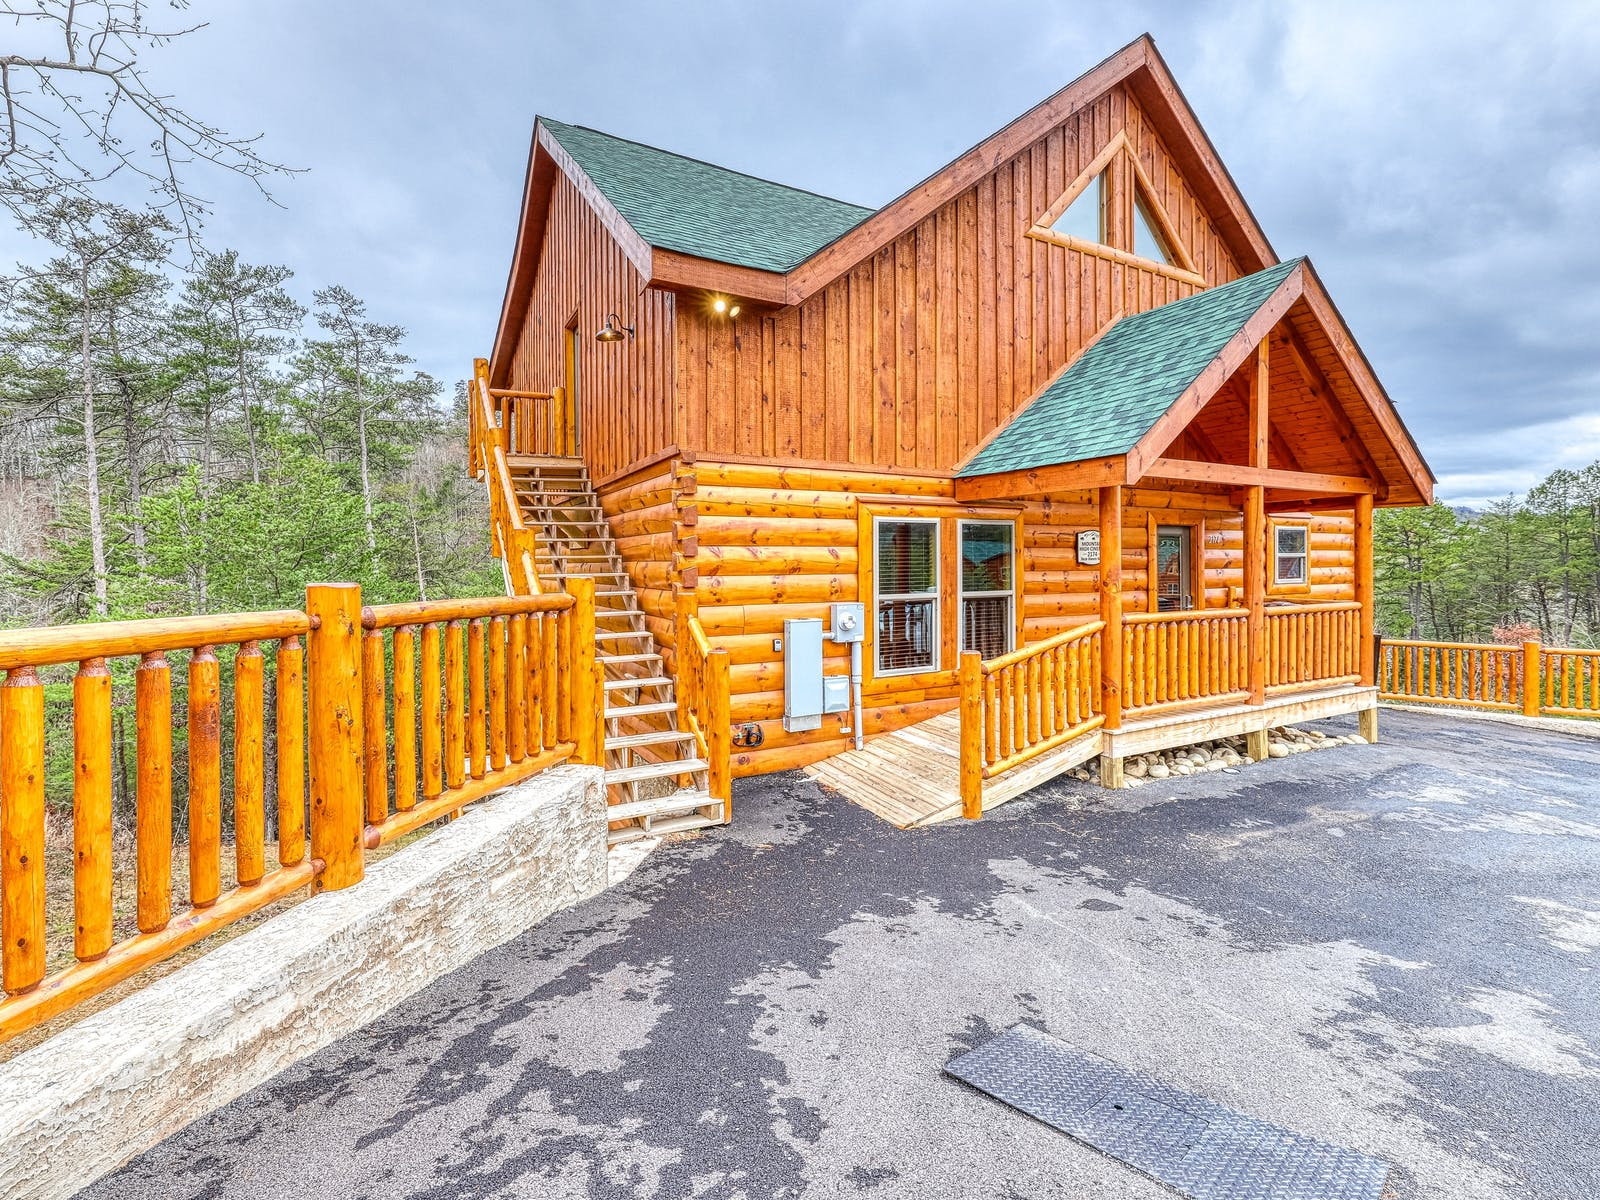 cabin in Smoky Mountains National Park